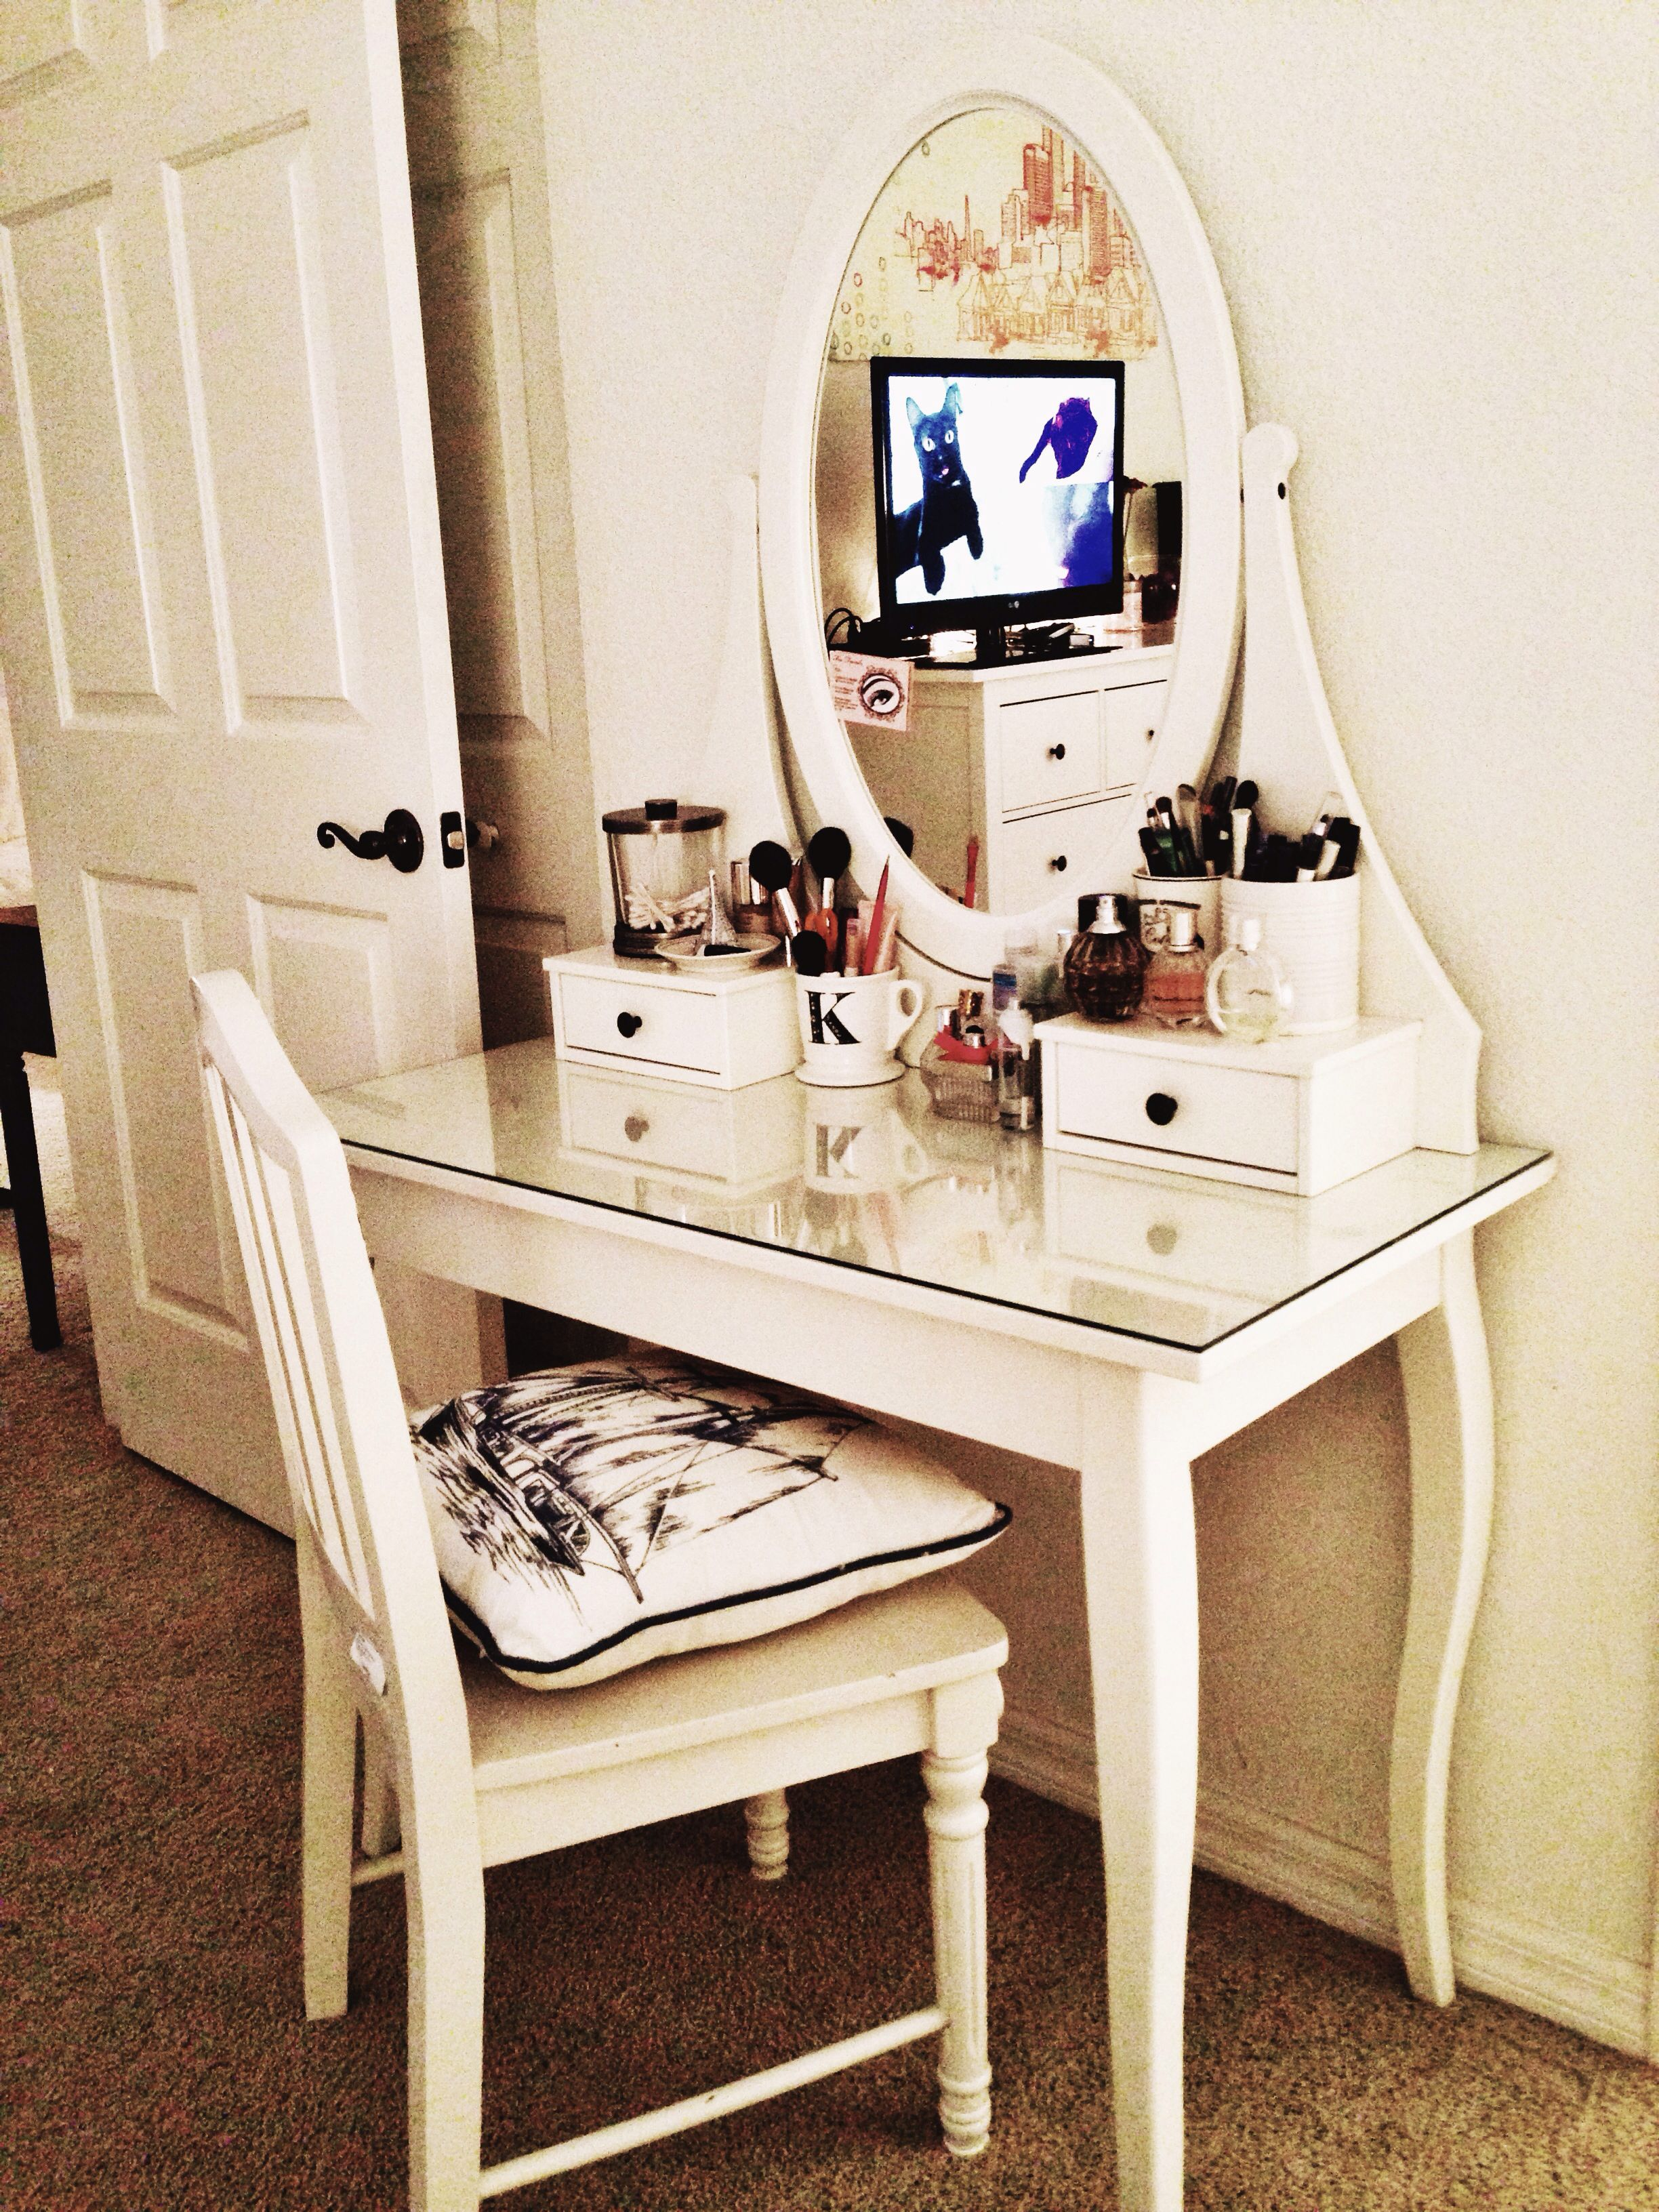 My new hemnes dressing table from ikea yay hamnes for Ikea hemnes vanity table